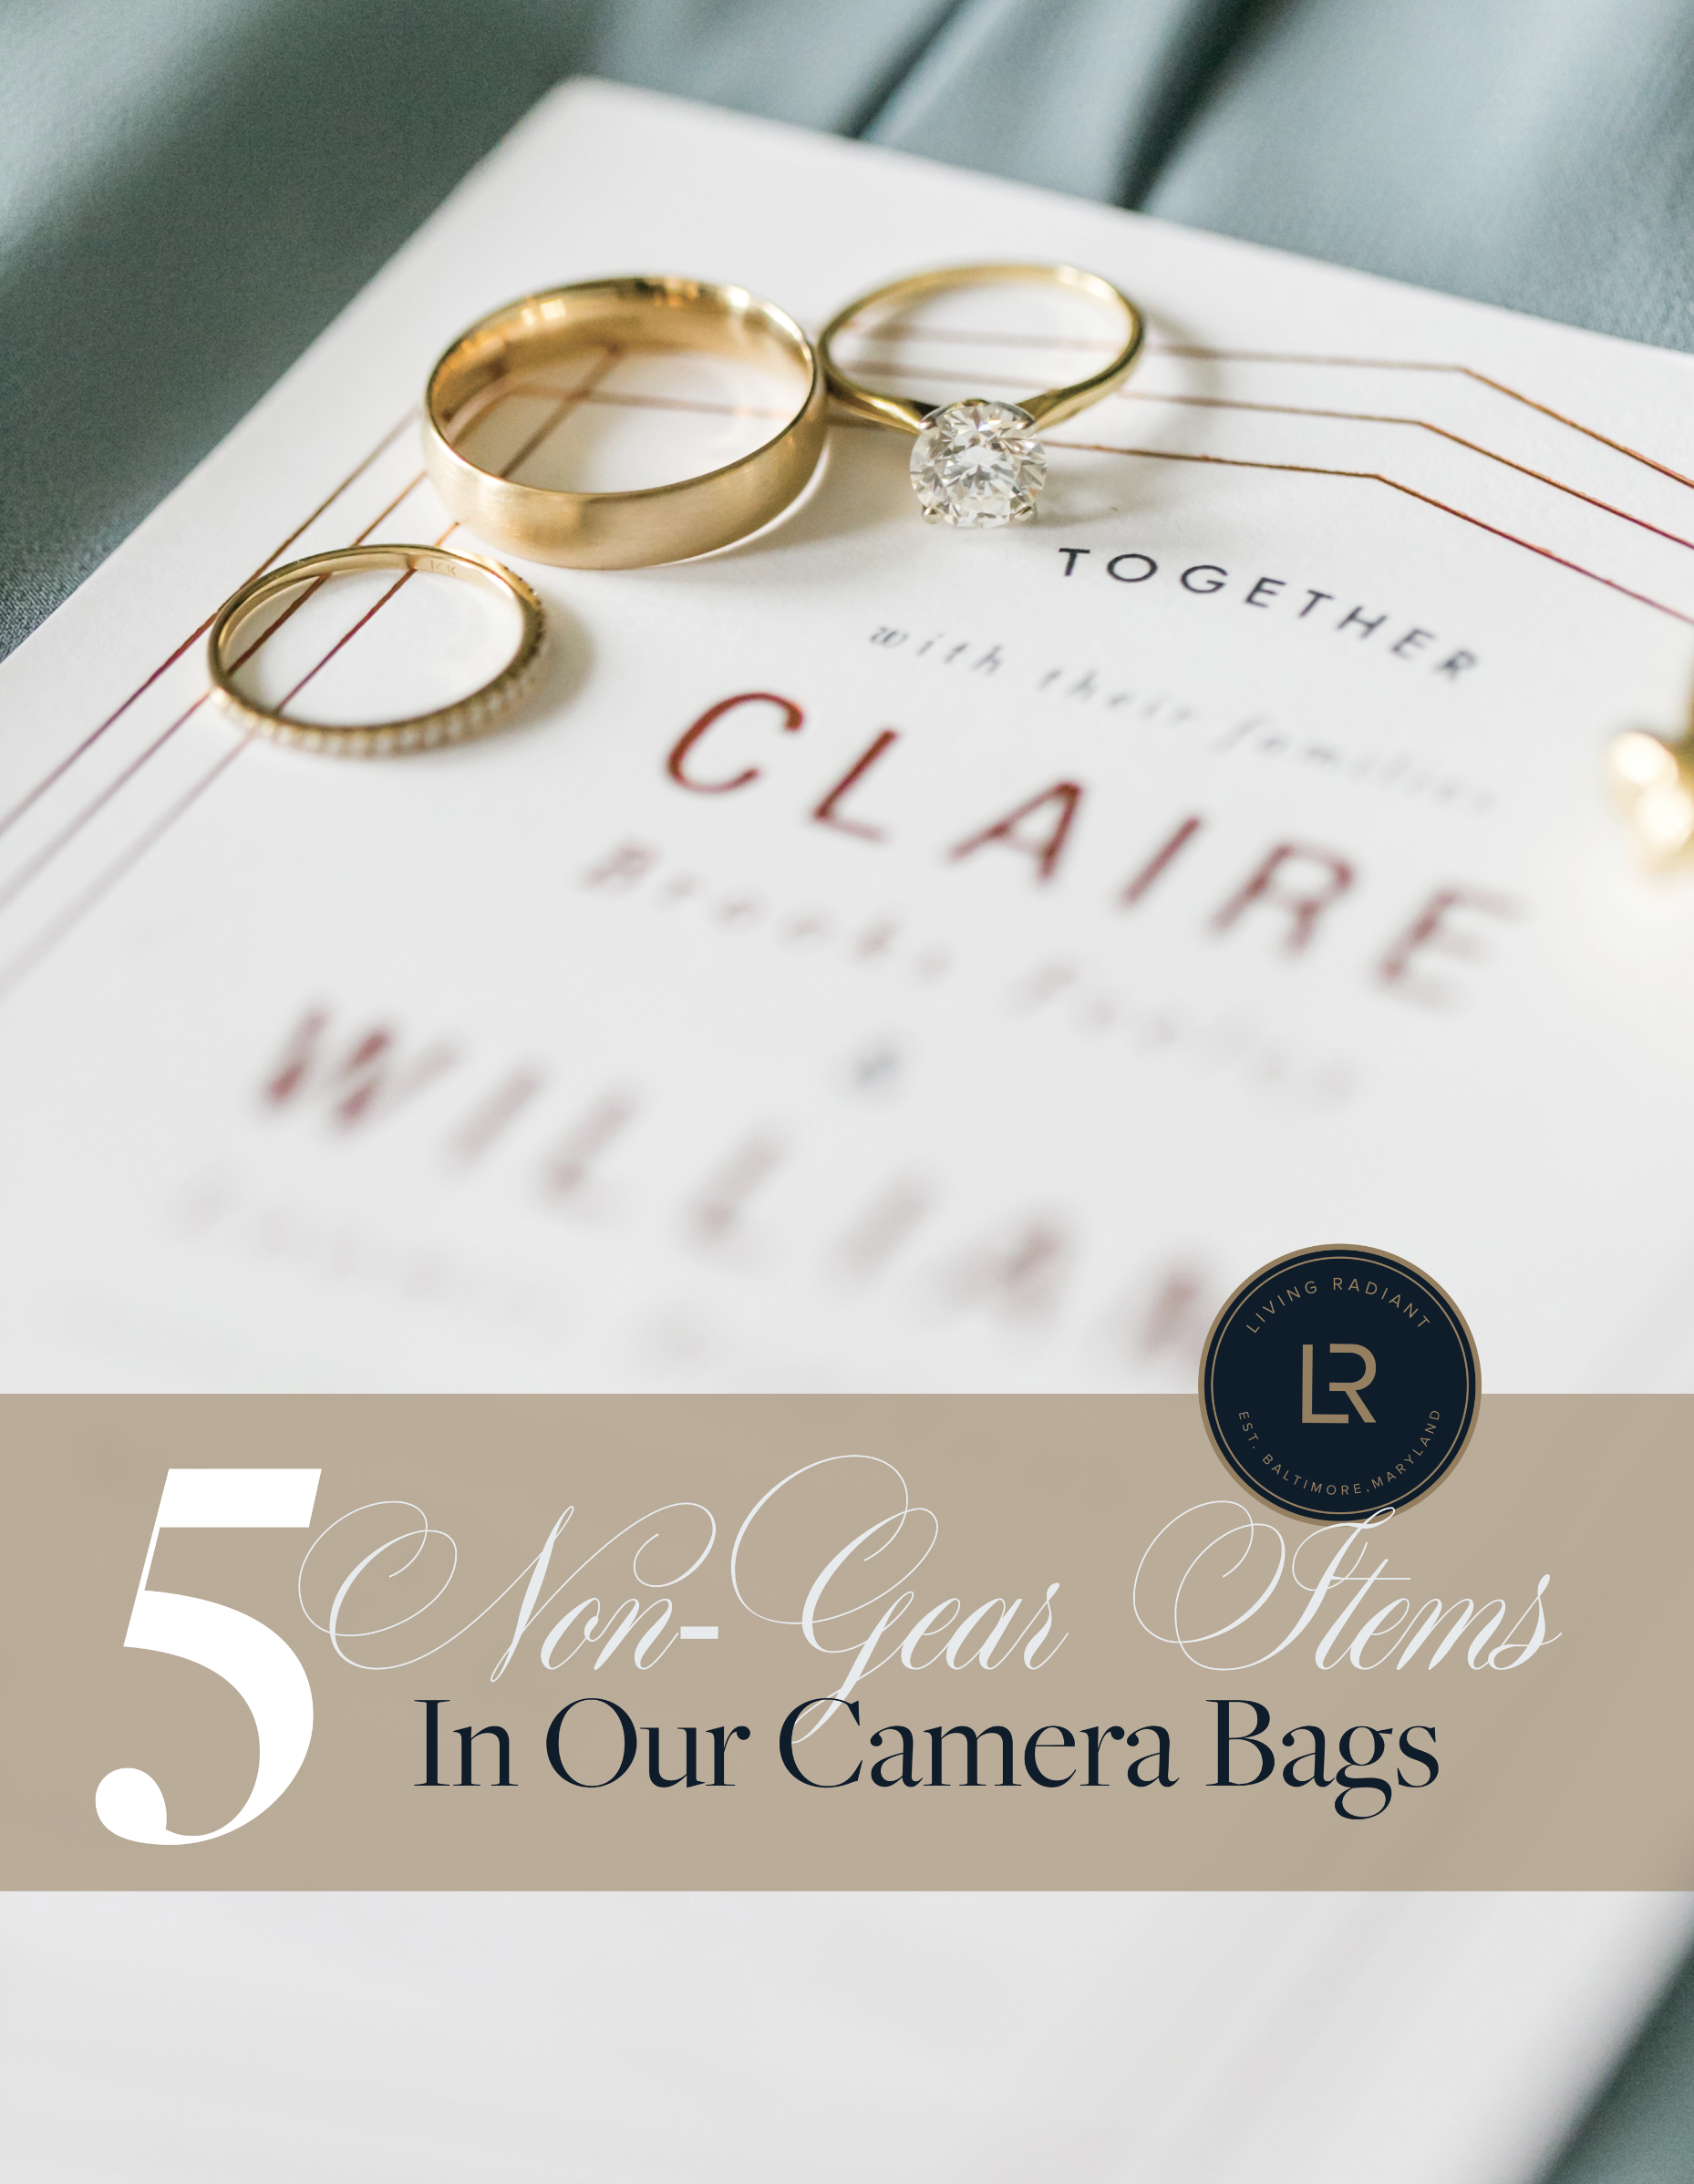 5 Non-Gear Items In Our Camera Bags